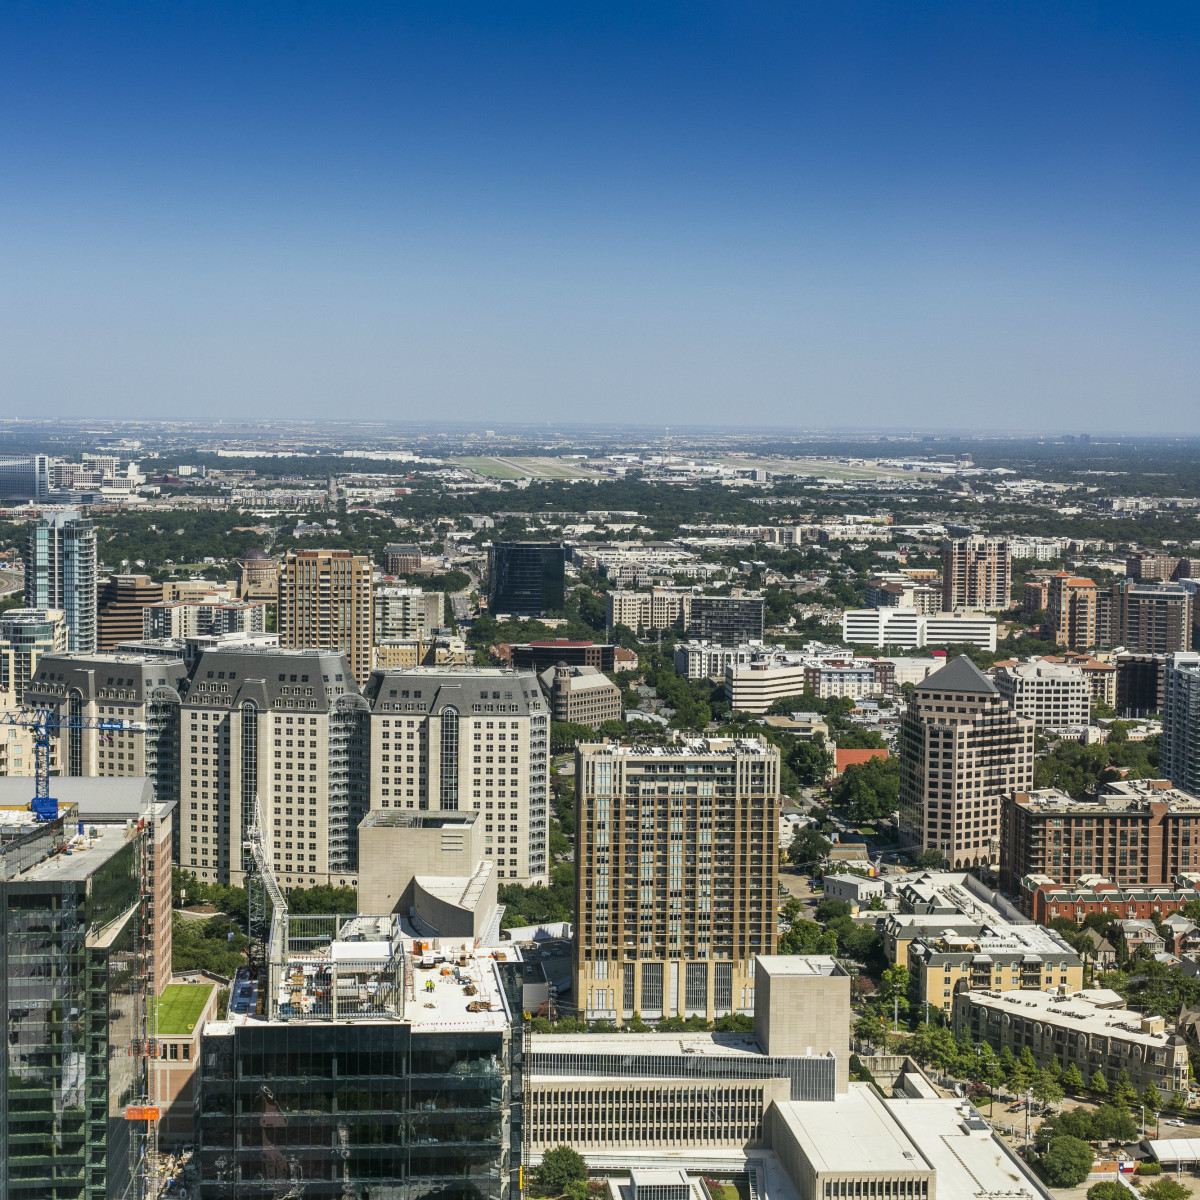 Uptown Dallas in 2016